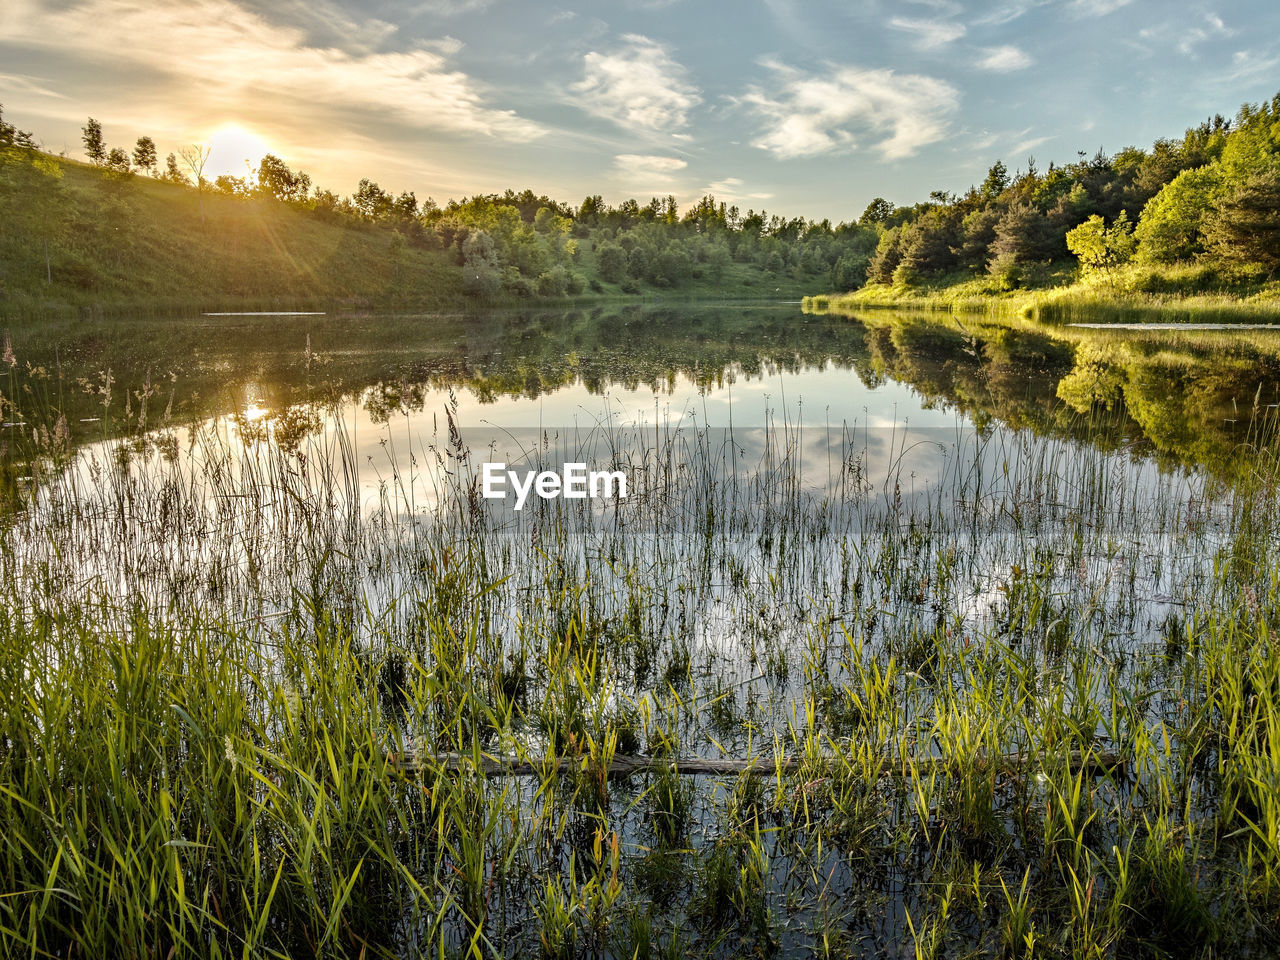 plant, water, beauty in nature, sky, tranquility, tranquil scene, lake, reflection, scenics - nature, growth, cloud - sky, nature, no people, tree, environment, grass, green color, land, landscape, outdoors